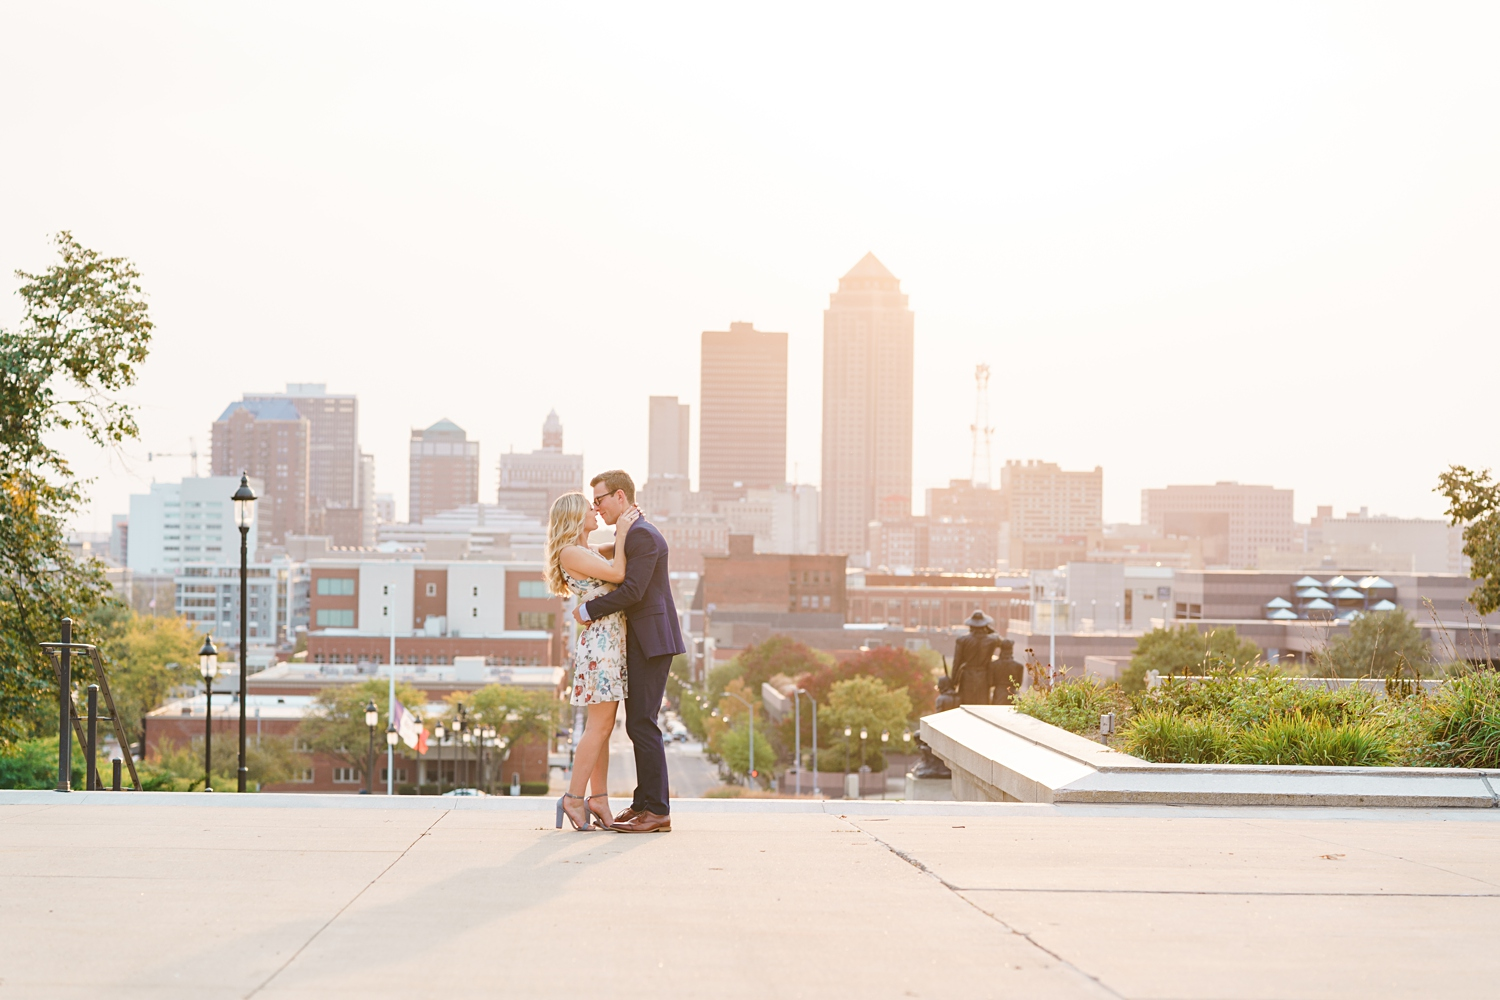 sunset engagement photos at the capitol in Des Moines